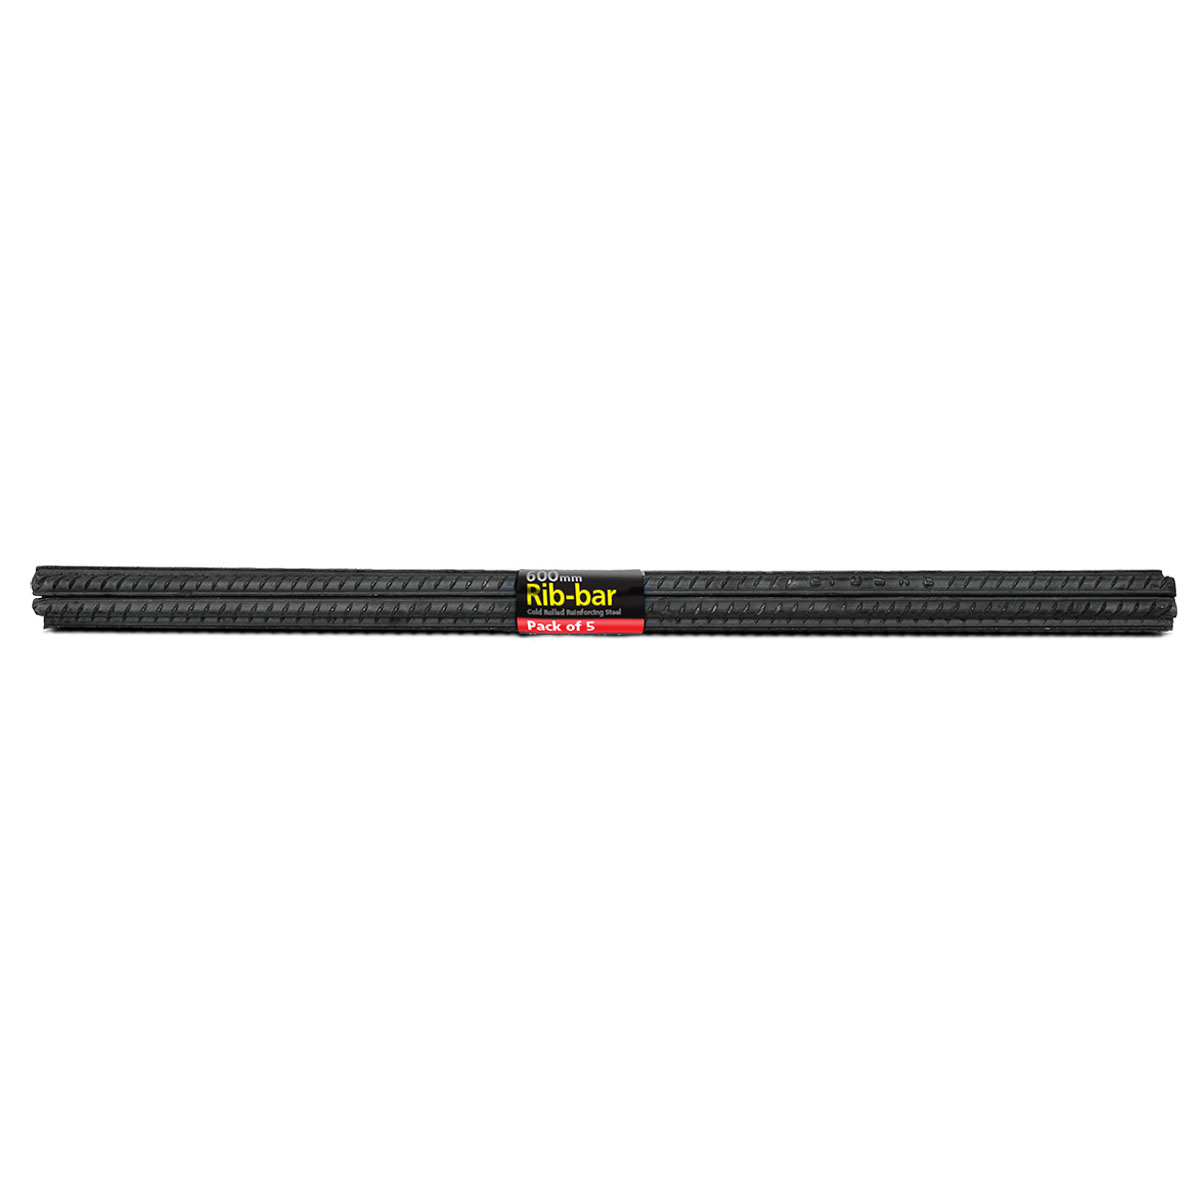 71661 rib bar 12mm x 600mm 5 pack